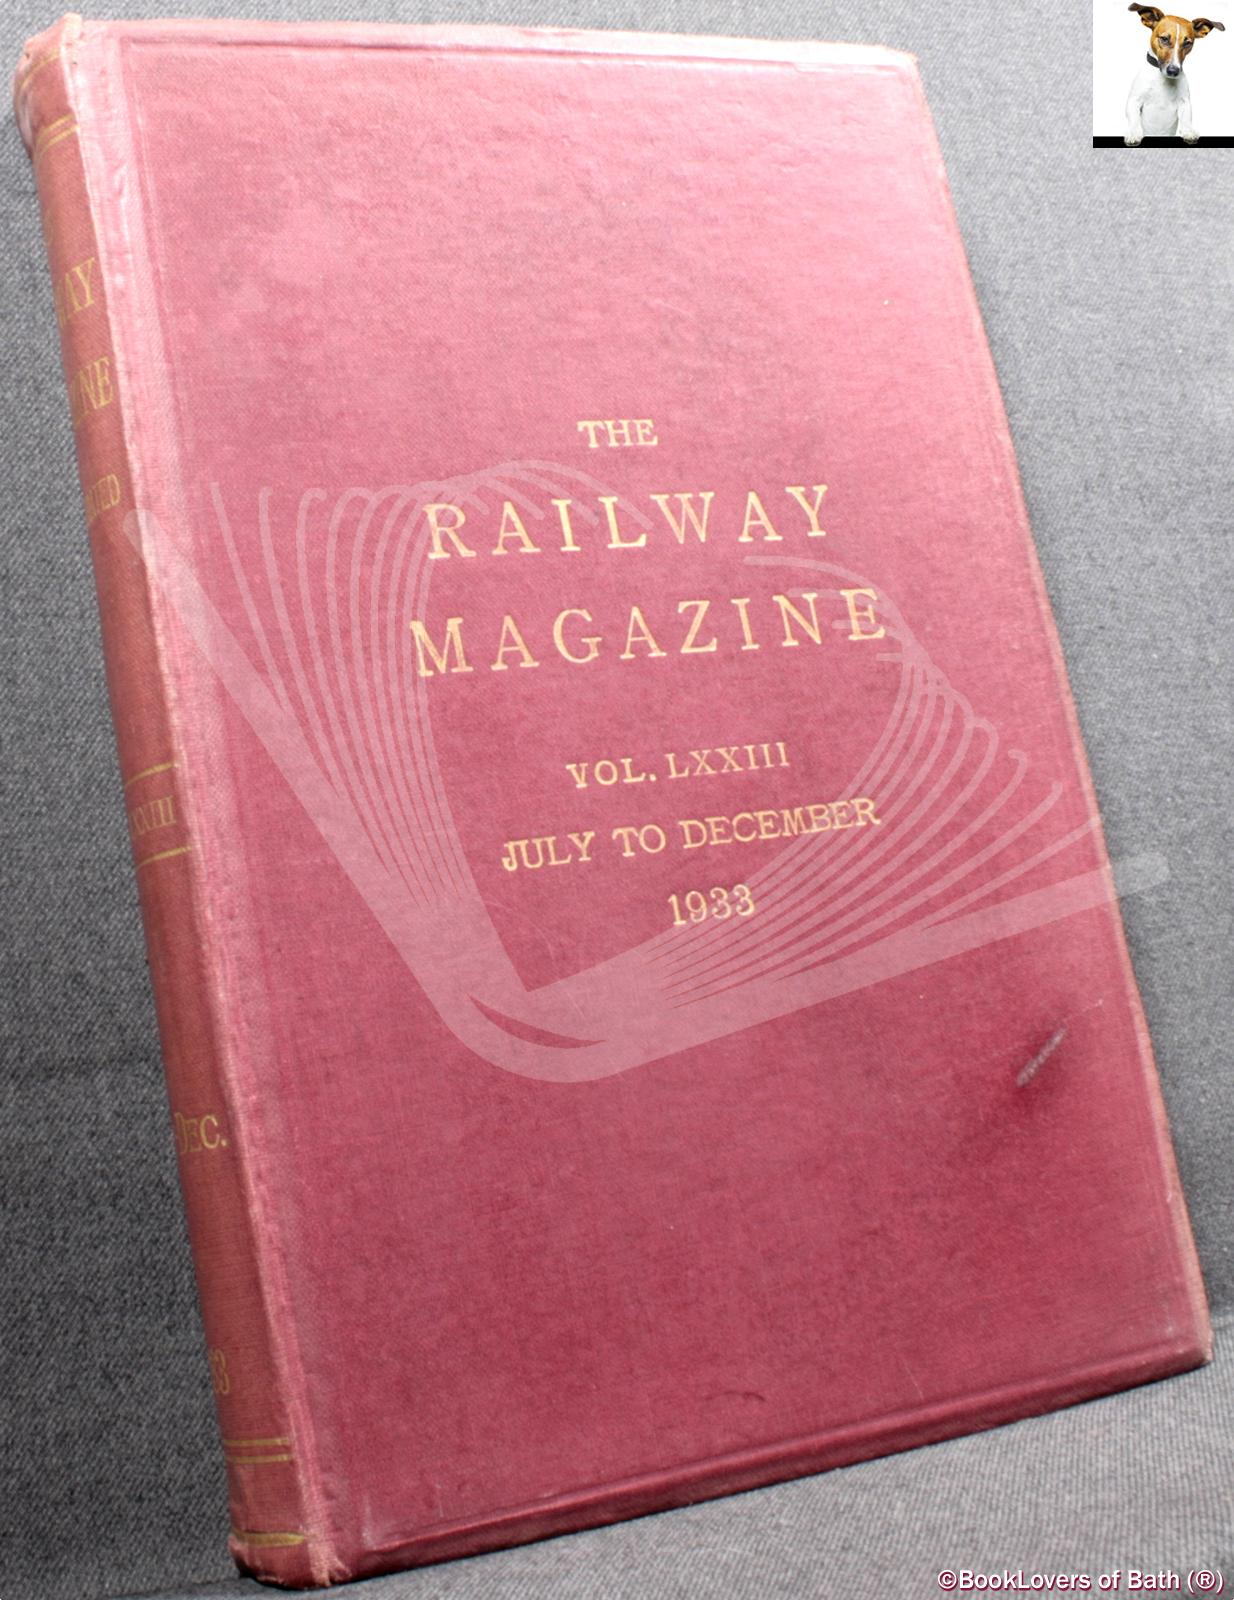 The Railway Magazine Voluime LXXIII July to December 1933 - Anon